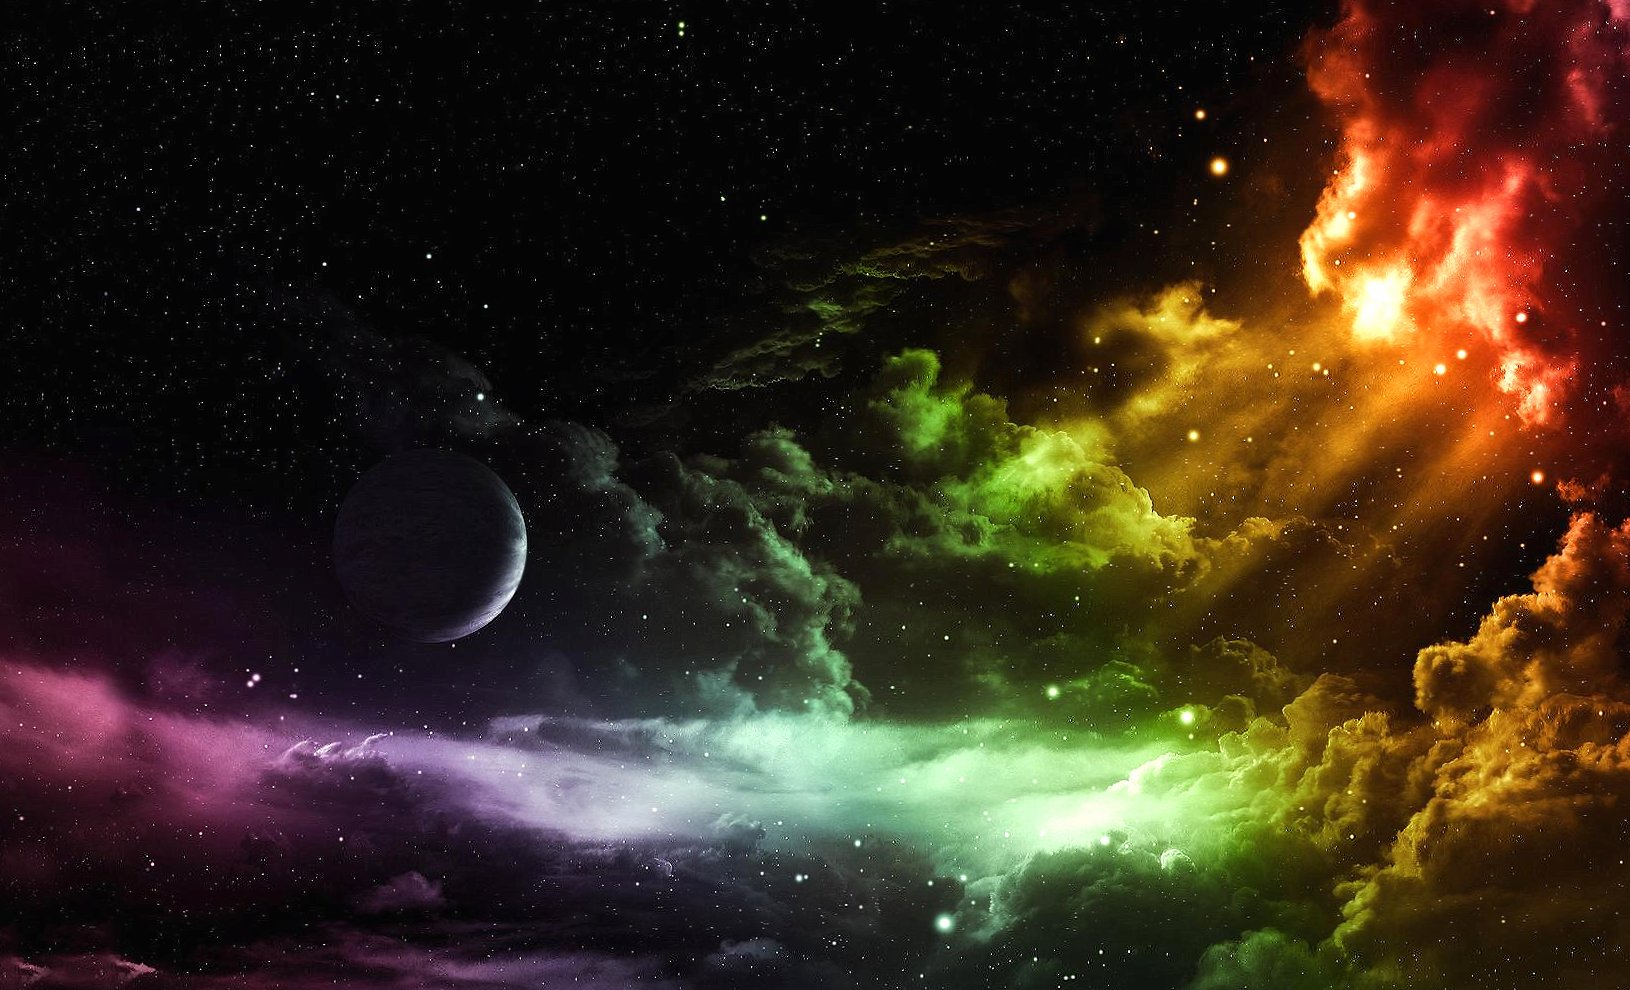 Clouds in space wallpapers HD quality